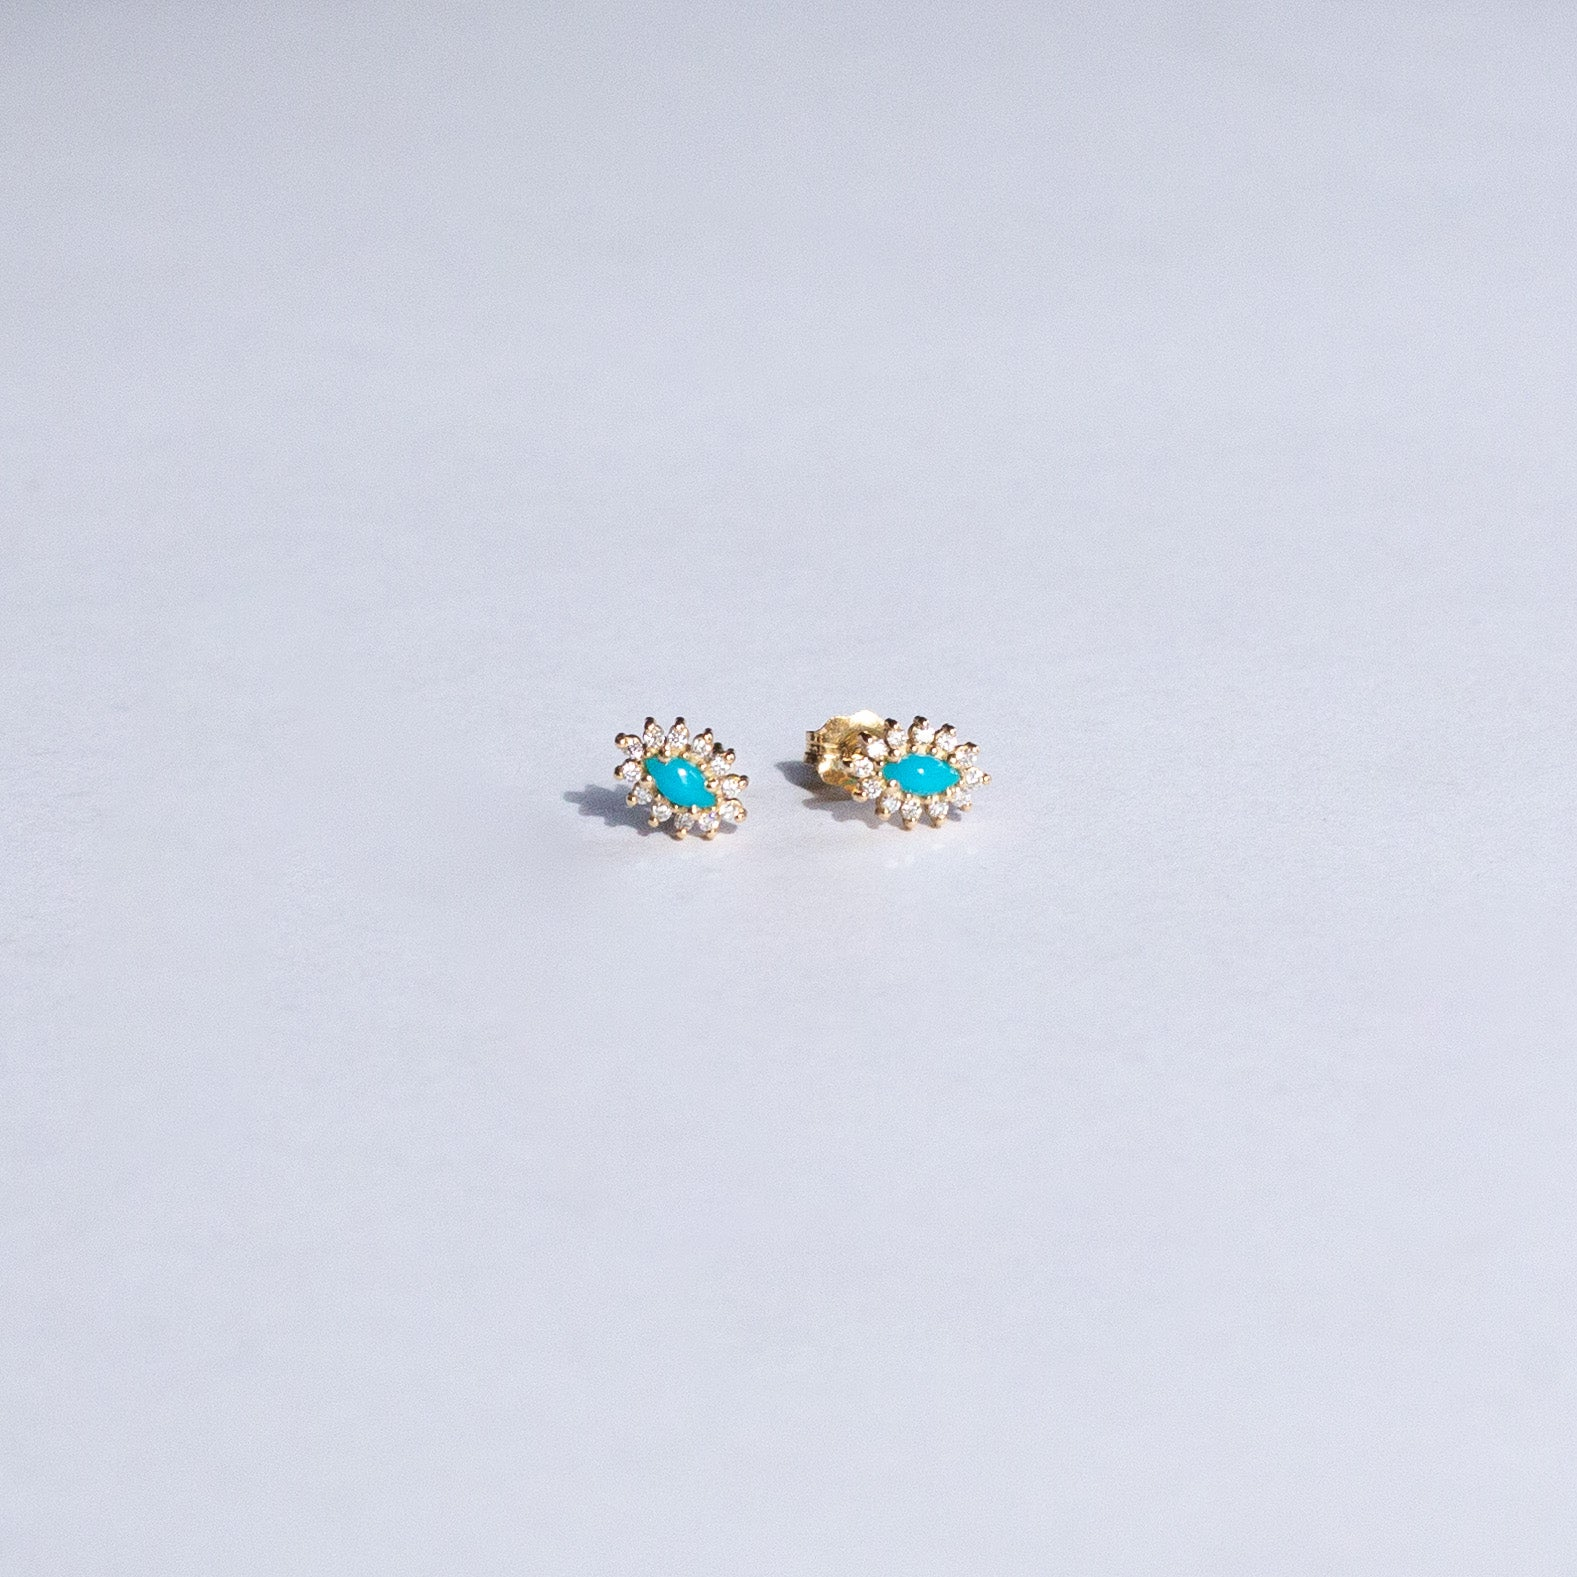 14K Yellow Gold Turquoise and Diamond Stud earrings